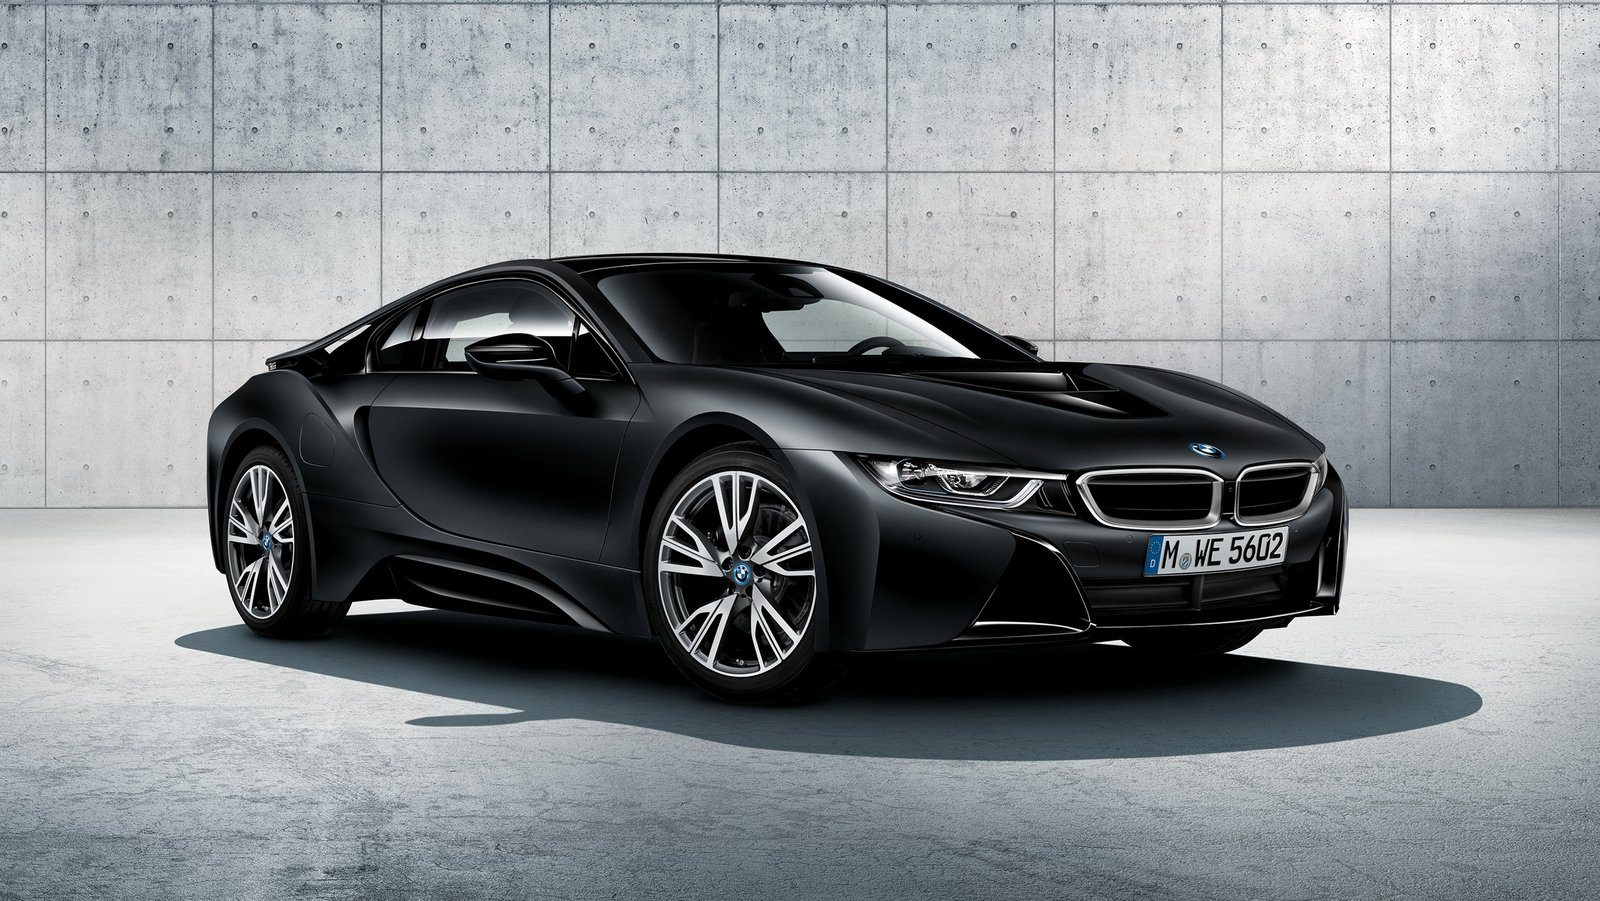 2017 bmw i8 protonic frozen black edition top speed. Black Bedroom Furniture Sets. Home Design Ideas